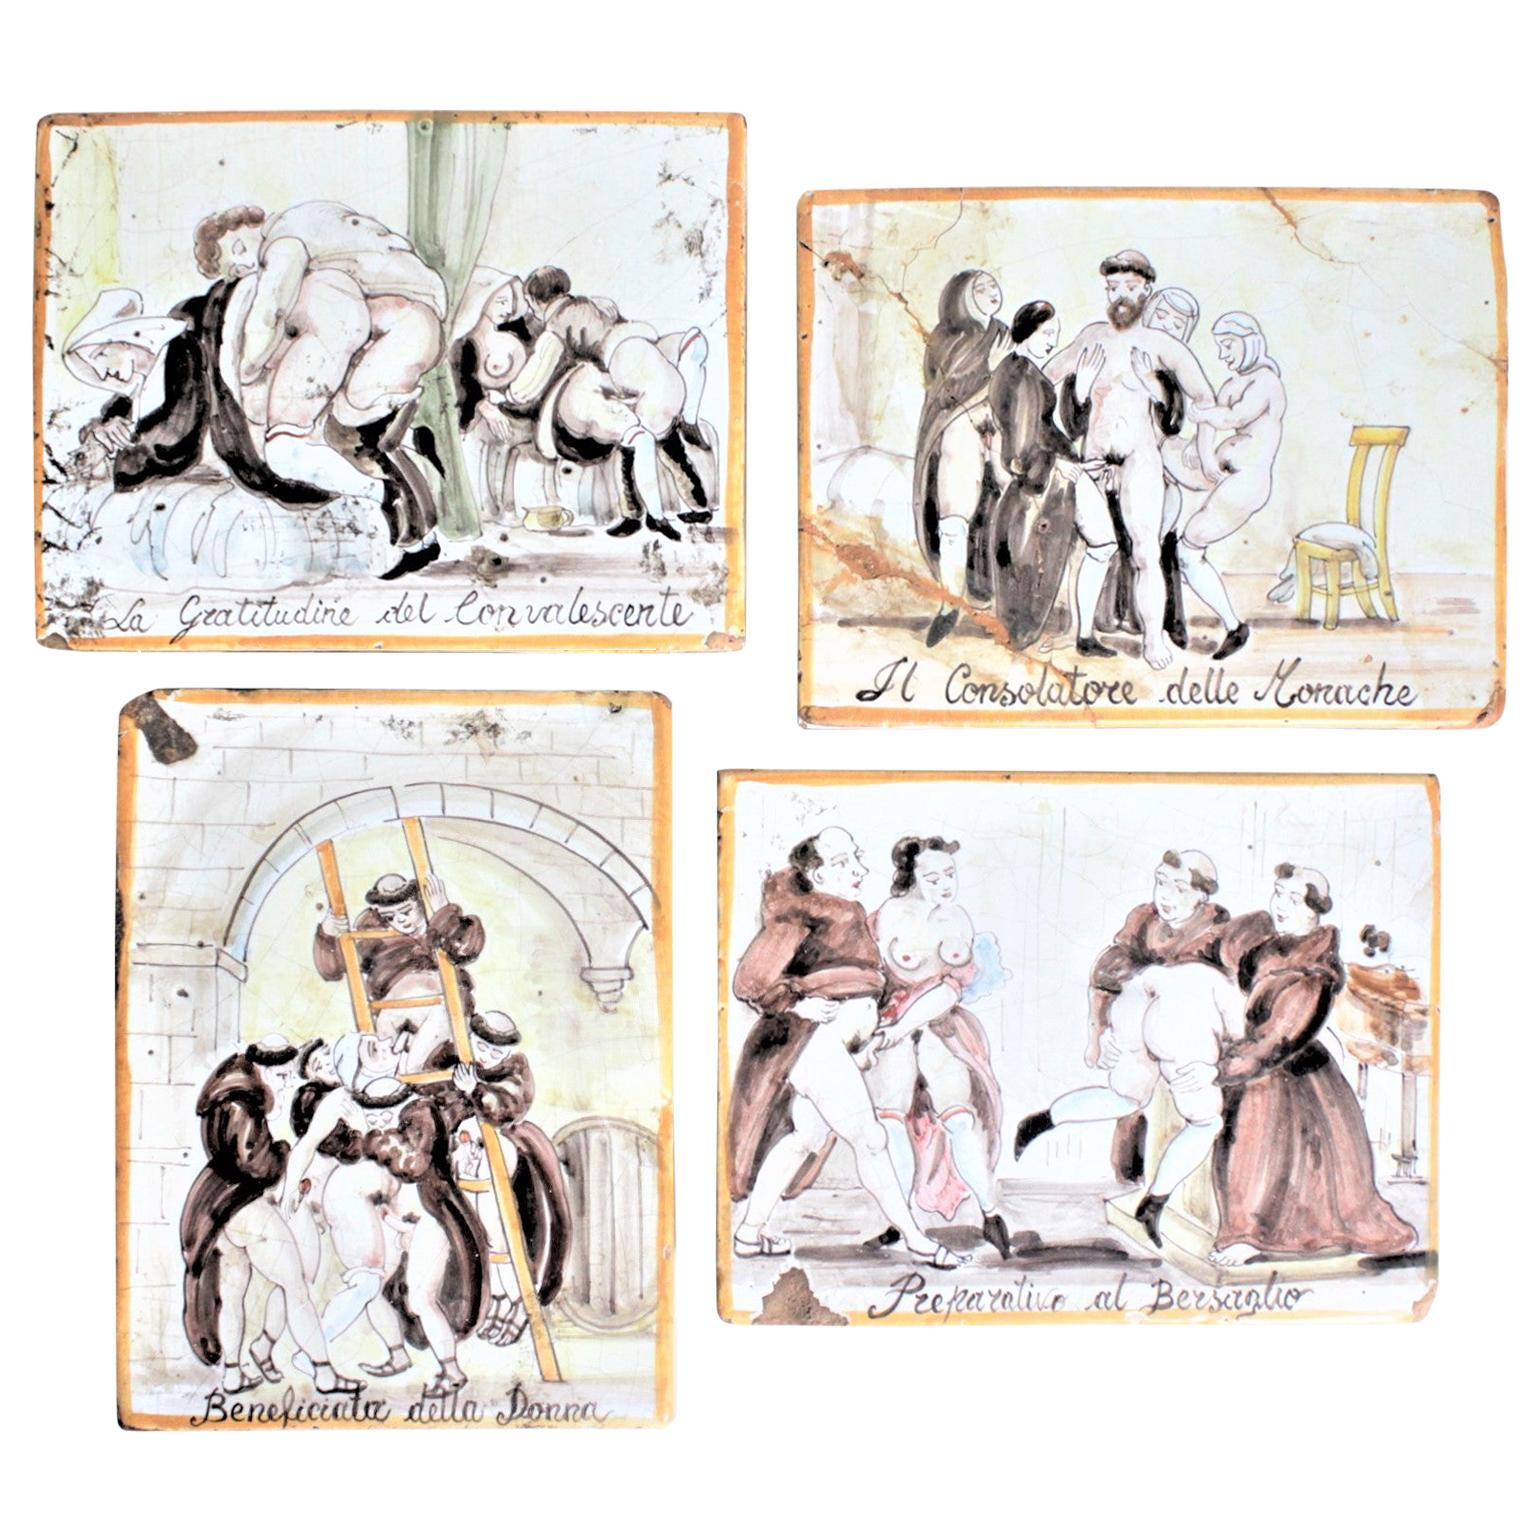 Four Antique Italian Extreme Erotica Hand Painted Pottery Tiles of Monks & Nuns